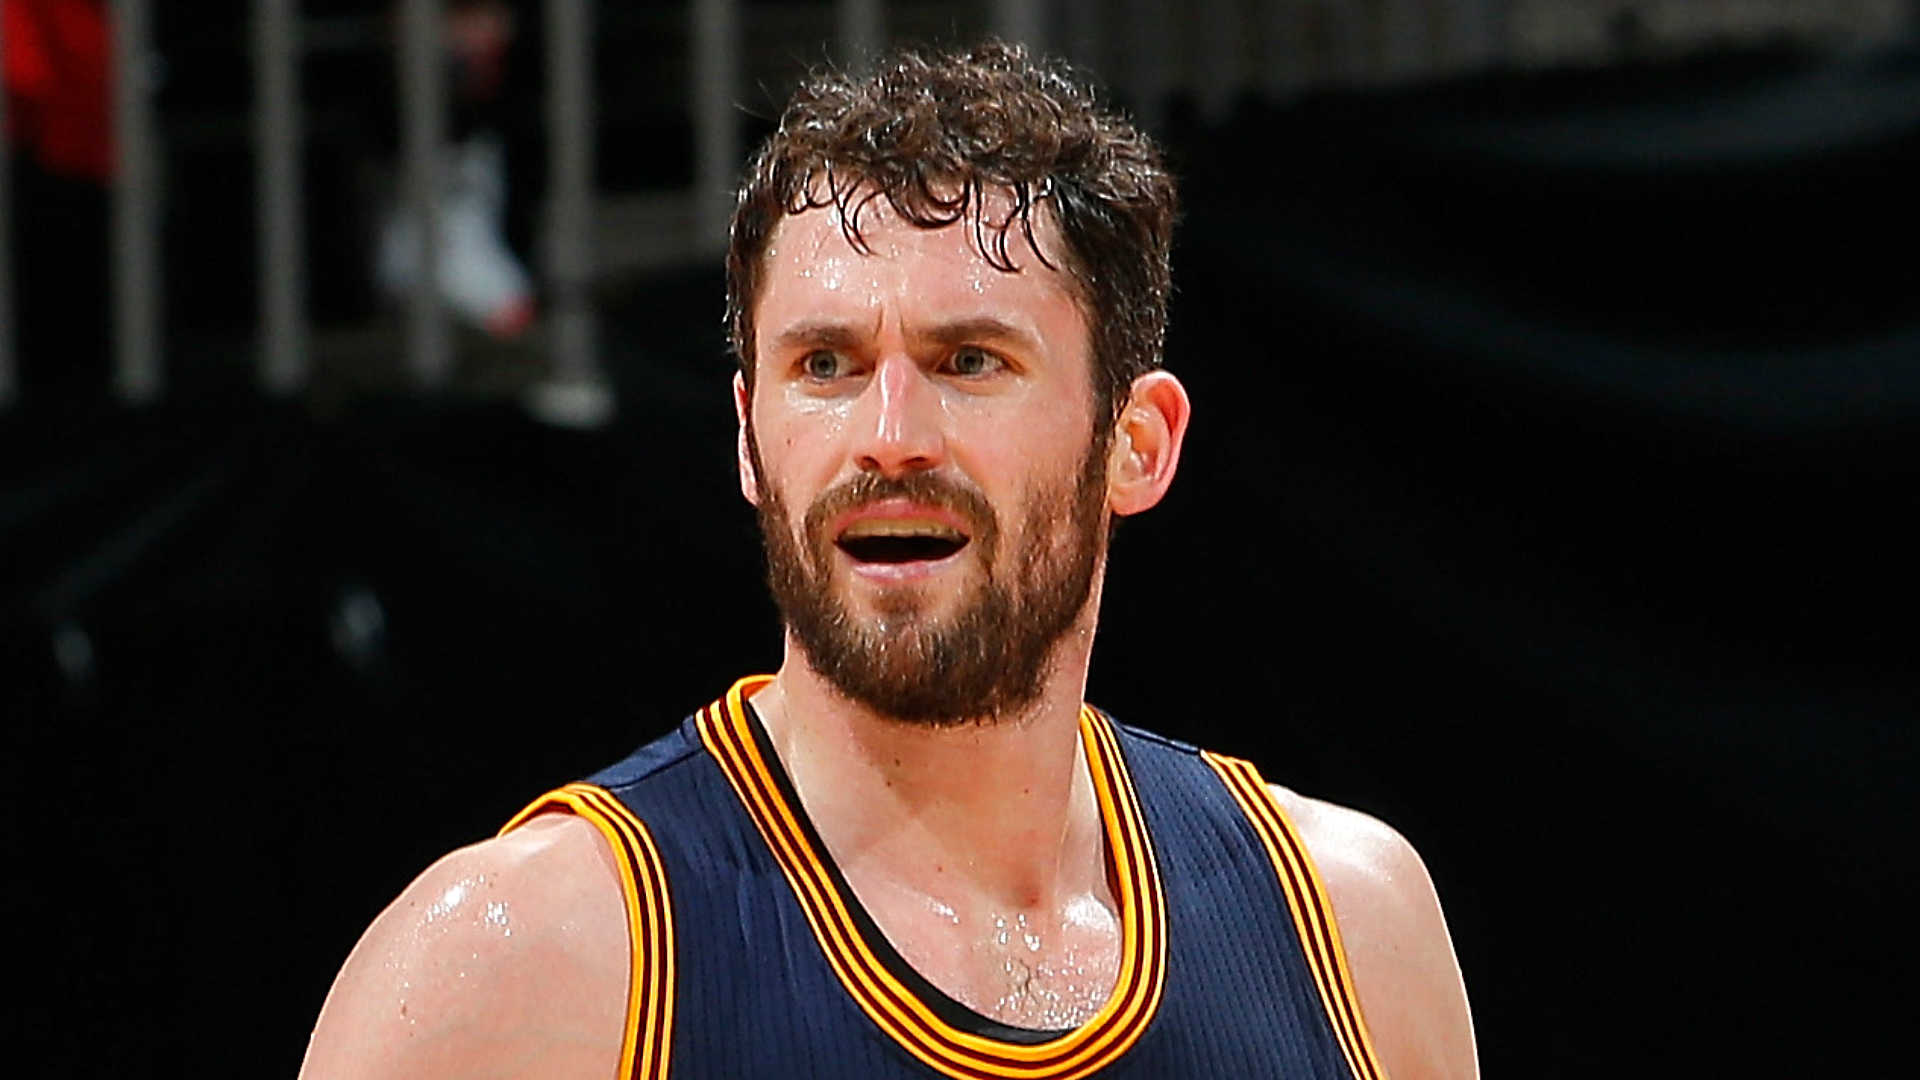 Kevin Love lost 10 Pounds due to Food Poisoning | Boosh ...